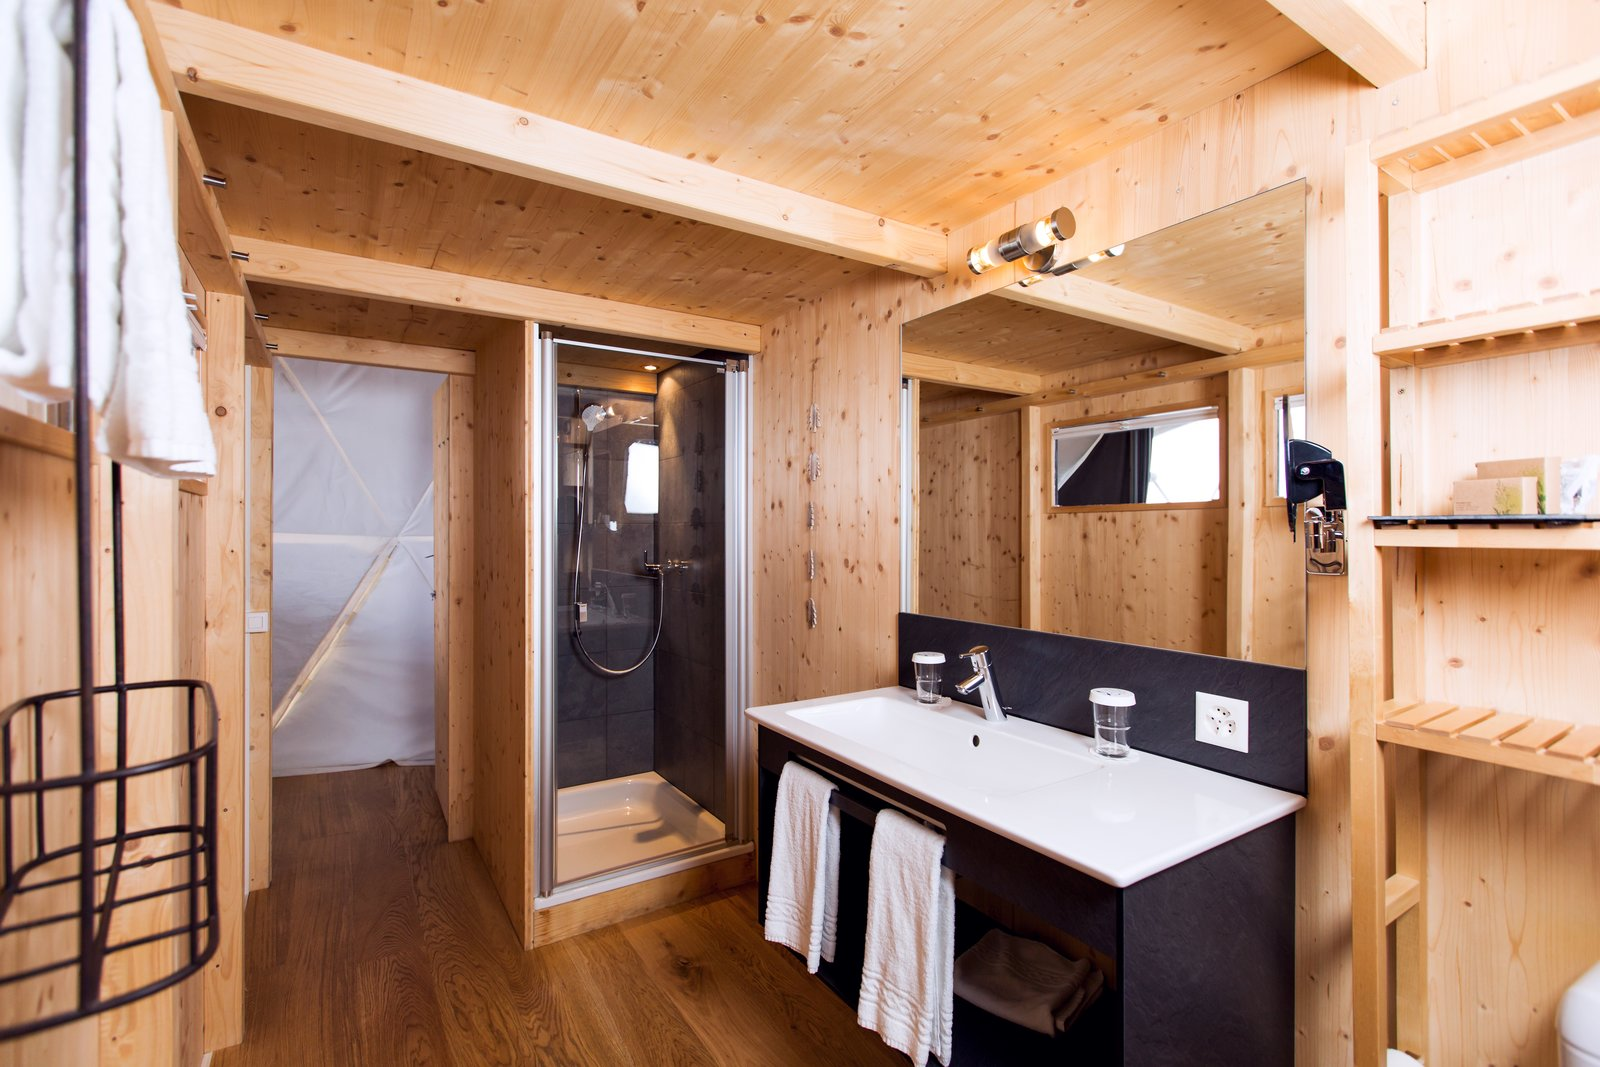 Bath Room, Medium Hardwood Floor, Enclosed Shower, Wall Lighting, and Drop In Sink Each pod is conveniently equipped with a complete bathroom.  Photo 7 of 11 in Go Eco-Friendly Glamping in These Geodesic Domes in the Swiss Alps